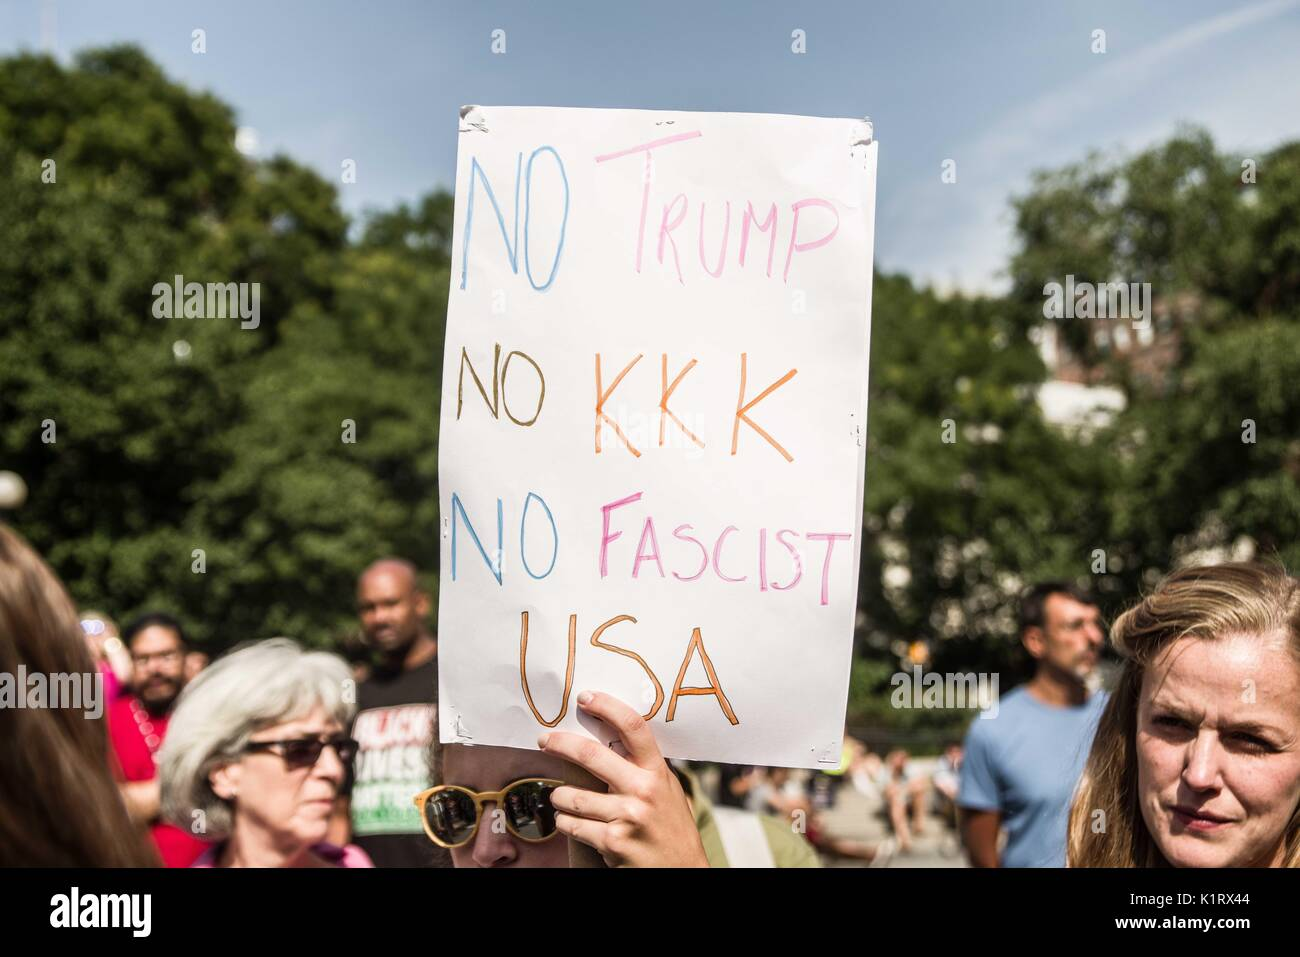 New York City, New York, USA. 27th Aug, 2017. Over 80 demonstrated at NYC's Union Square against the rise of fascism and white supremacy in the United States. Furthermore, the action was a show of solidarity with Berkeley, California, where the far- and radical-right organized a demonstration, which was met with counter-demonstrations. In the course of the demonstration, the platform turn towards the Israel-Palestine issue and anti-Zionism. Credit: Sachelle Babbar/ZUMA Wire/Alamy Live News - Stock Image